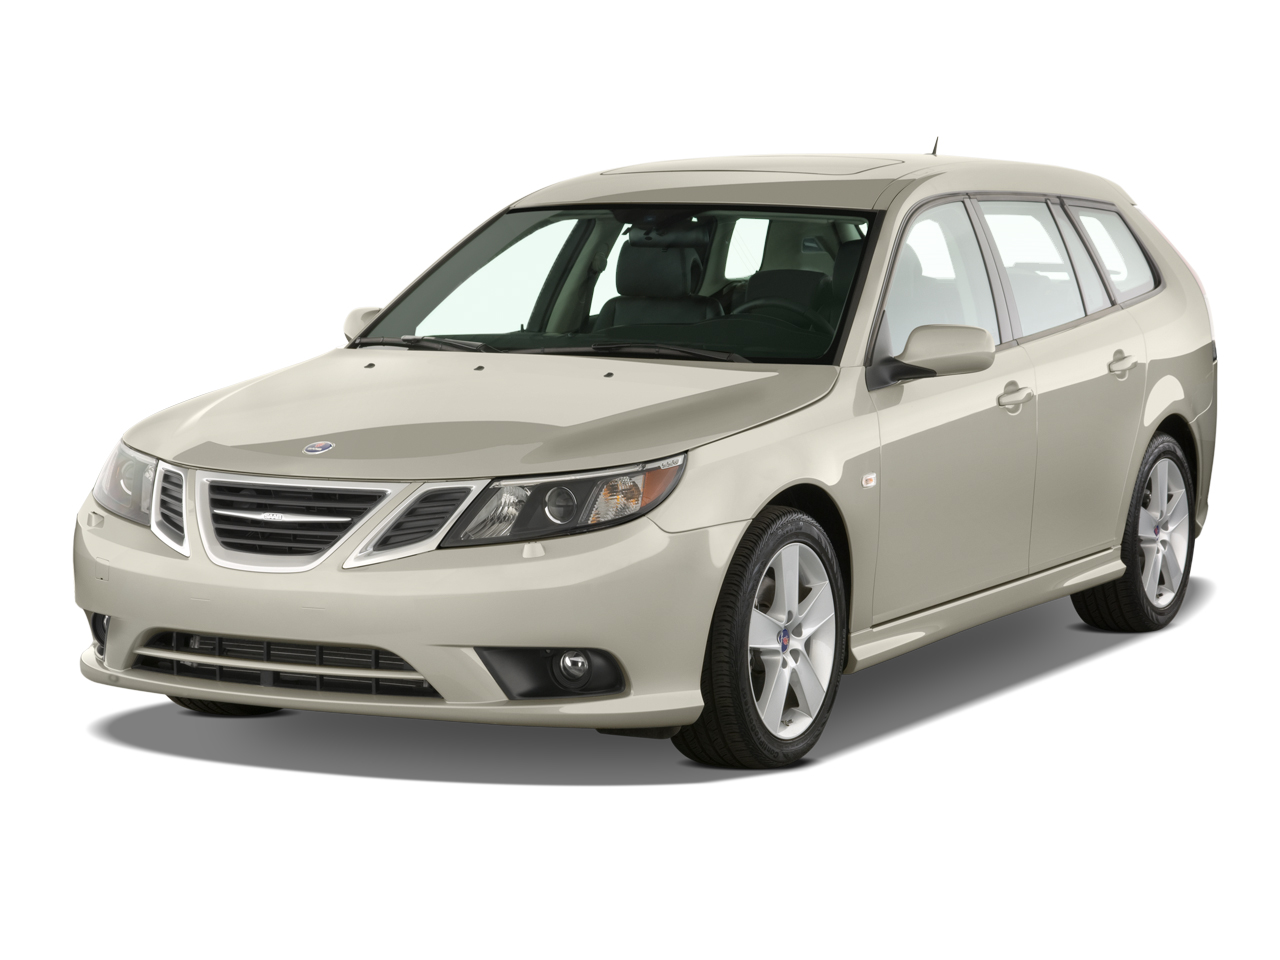 2011 saab 9 3 review ratings specs prices and photos the car connection. Black Bedroom Furniture Sets. Home Design Ideas